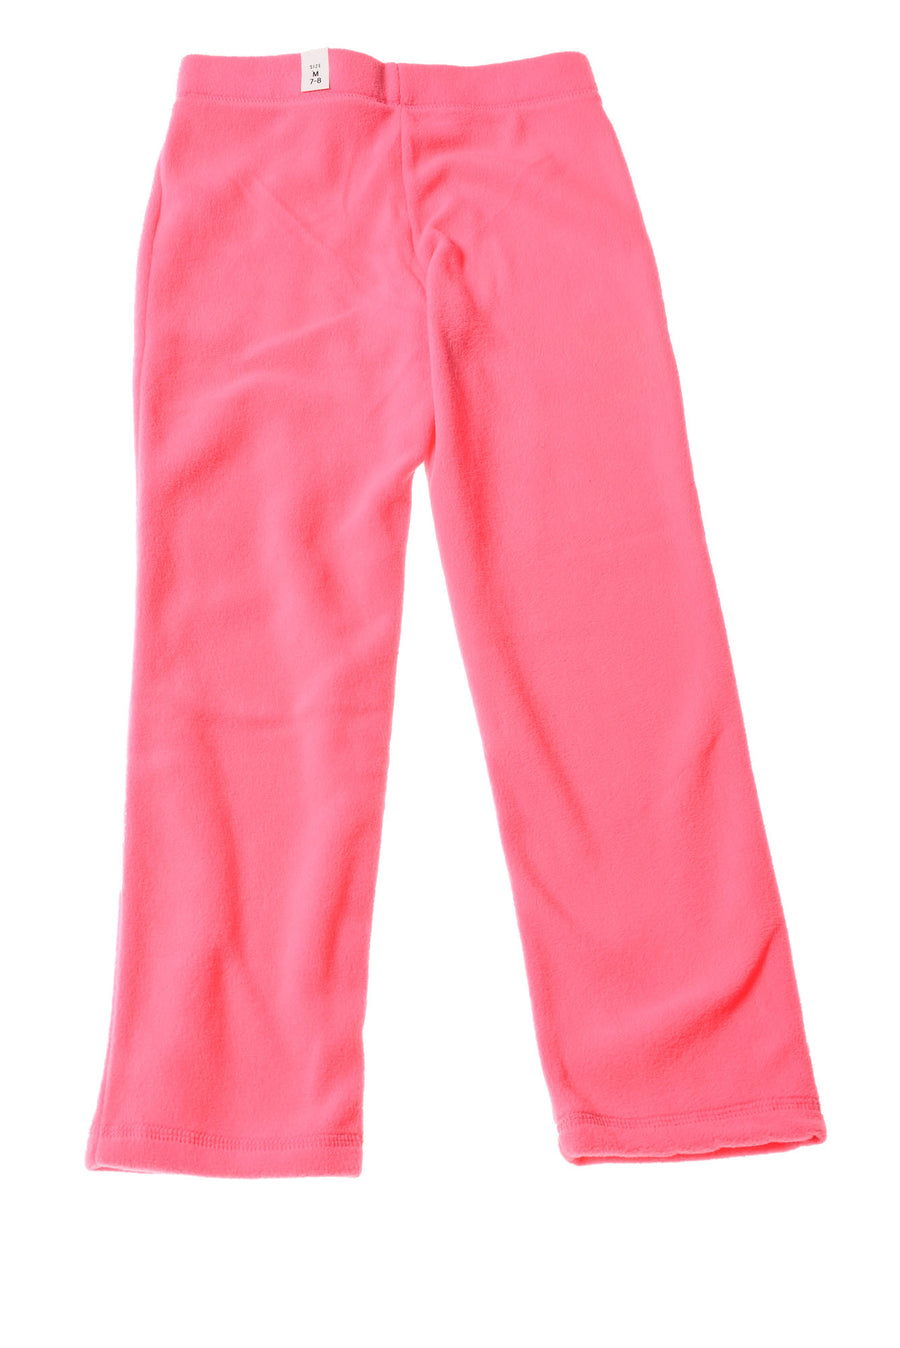 Girl's Slacks by The Children's Place